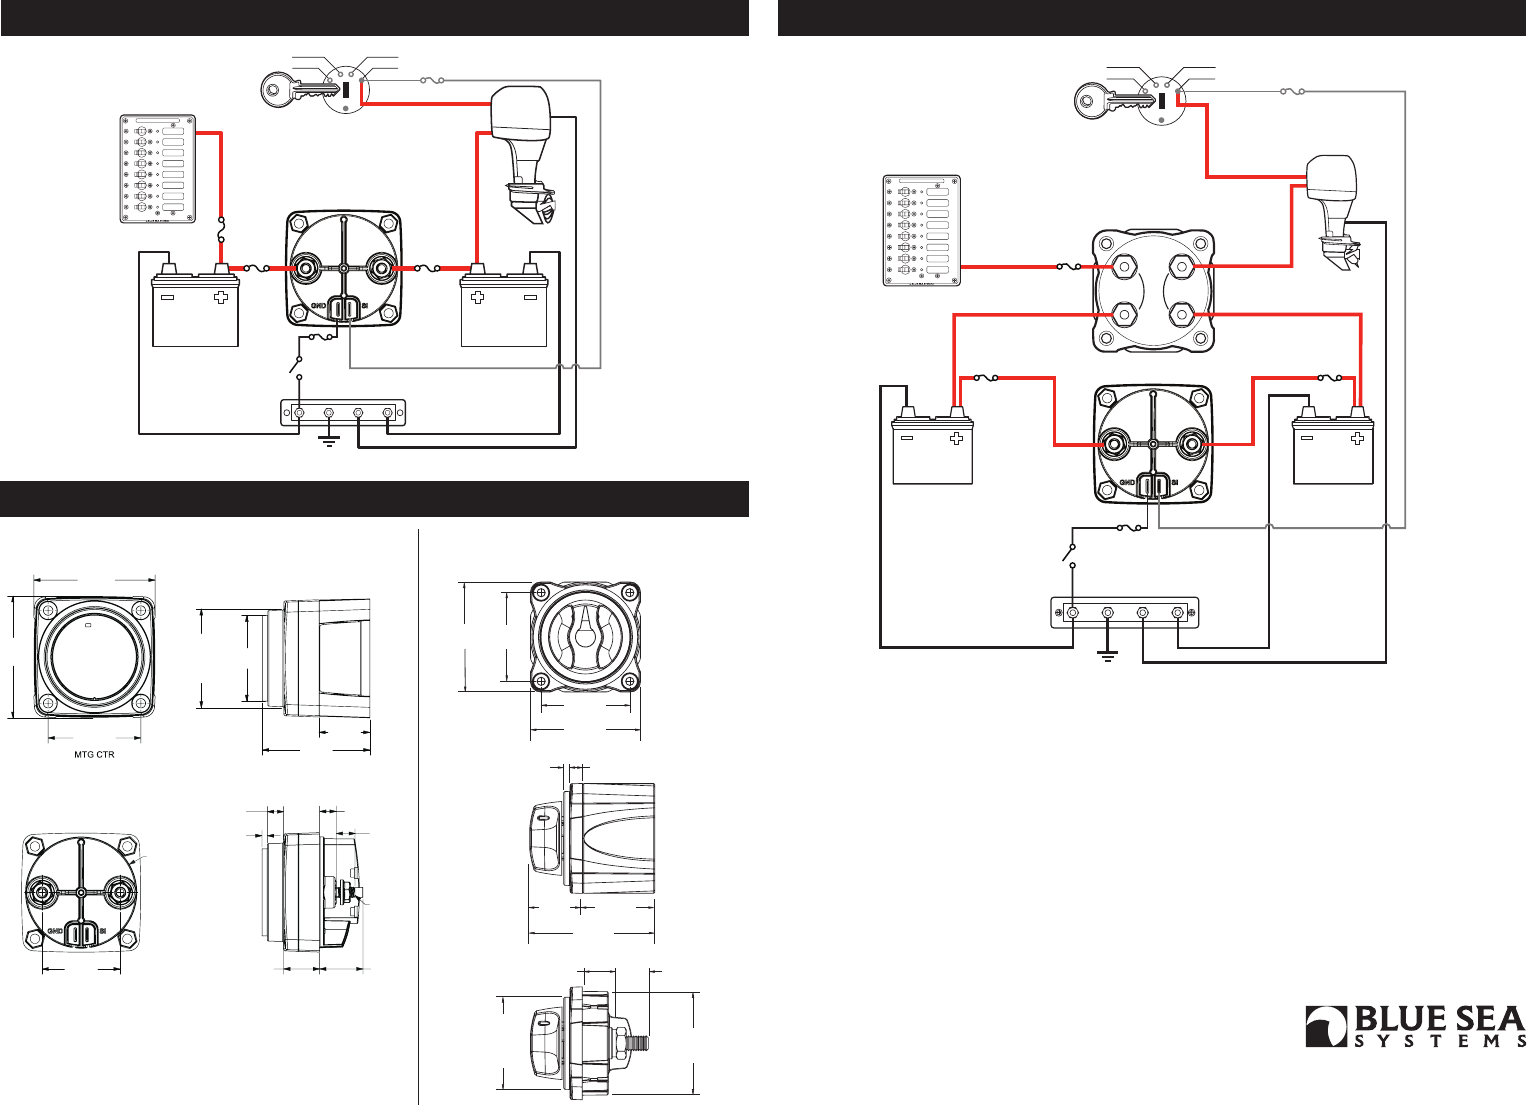 698b66bd 7897 4fe8 89cb 6270acd04f78 bg2 page 2 of blue sea systems stereo system m acr 7601 user guide blue sea si acr wiring diagram at n-0.co